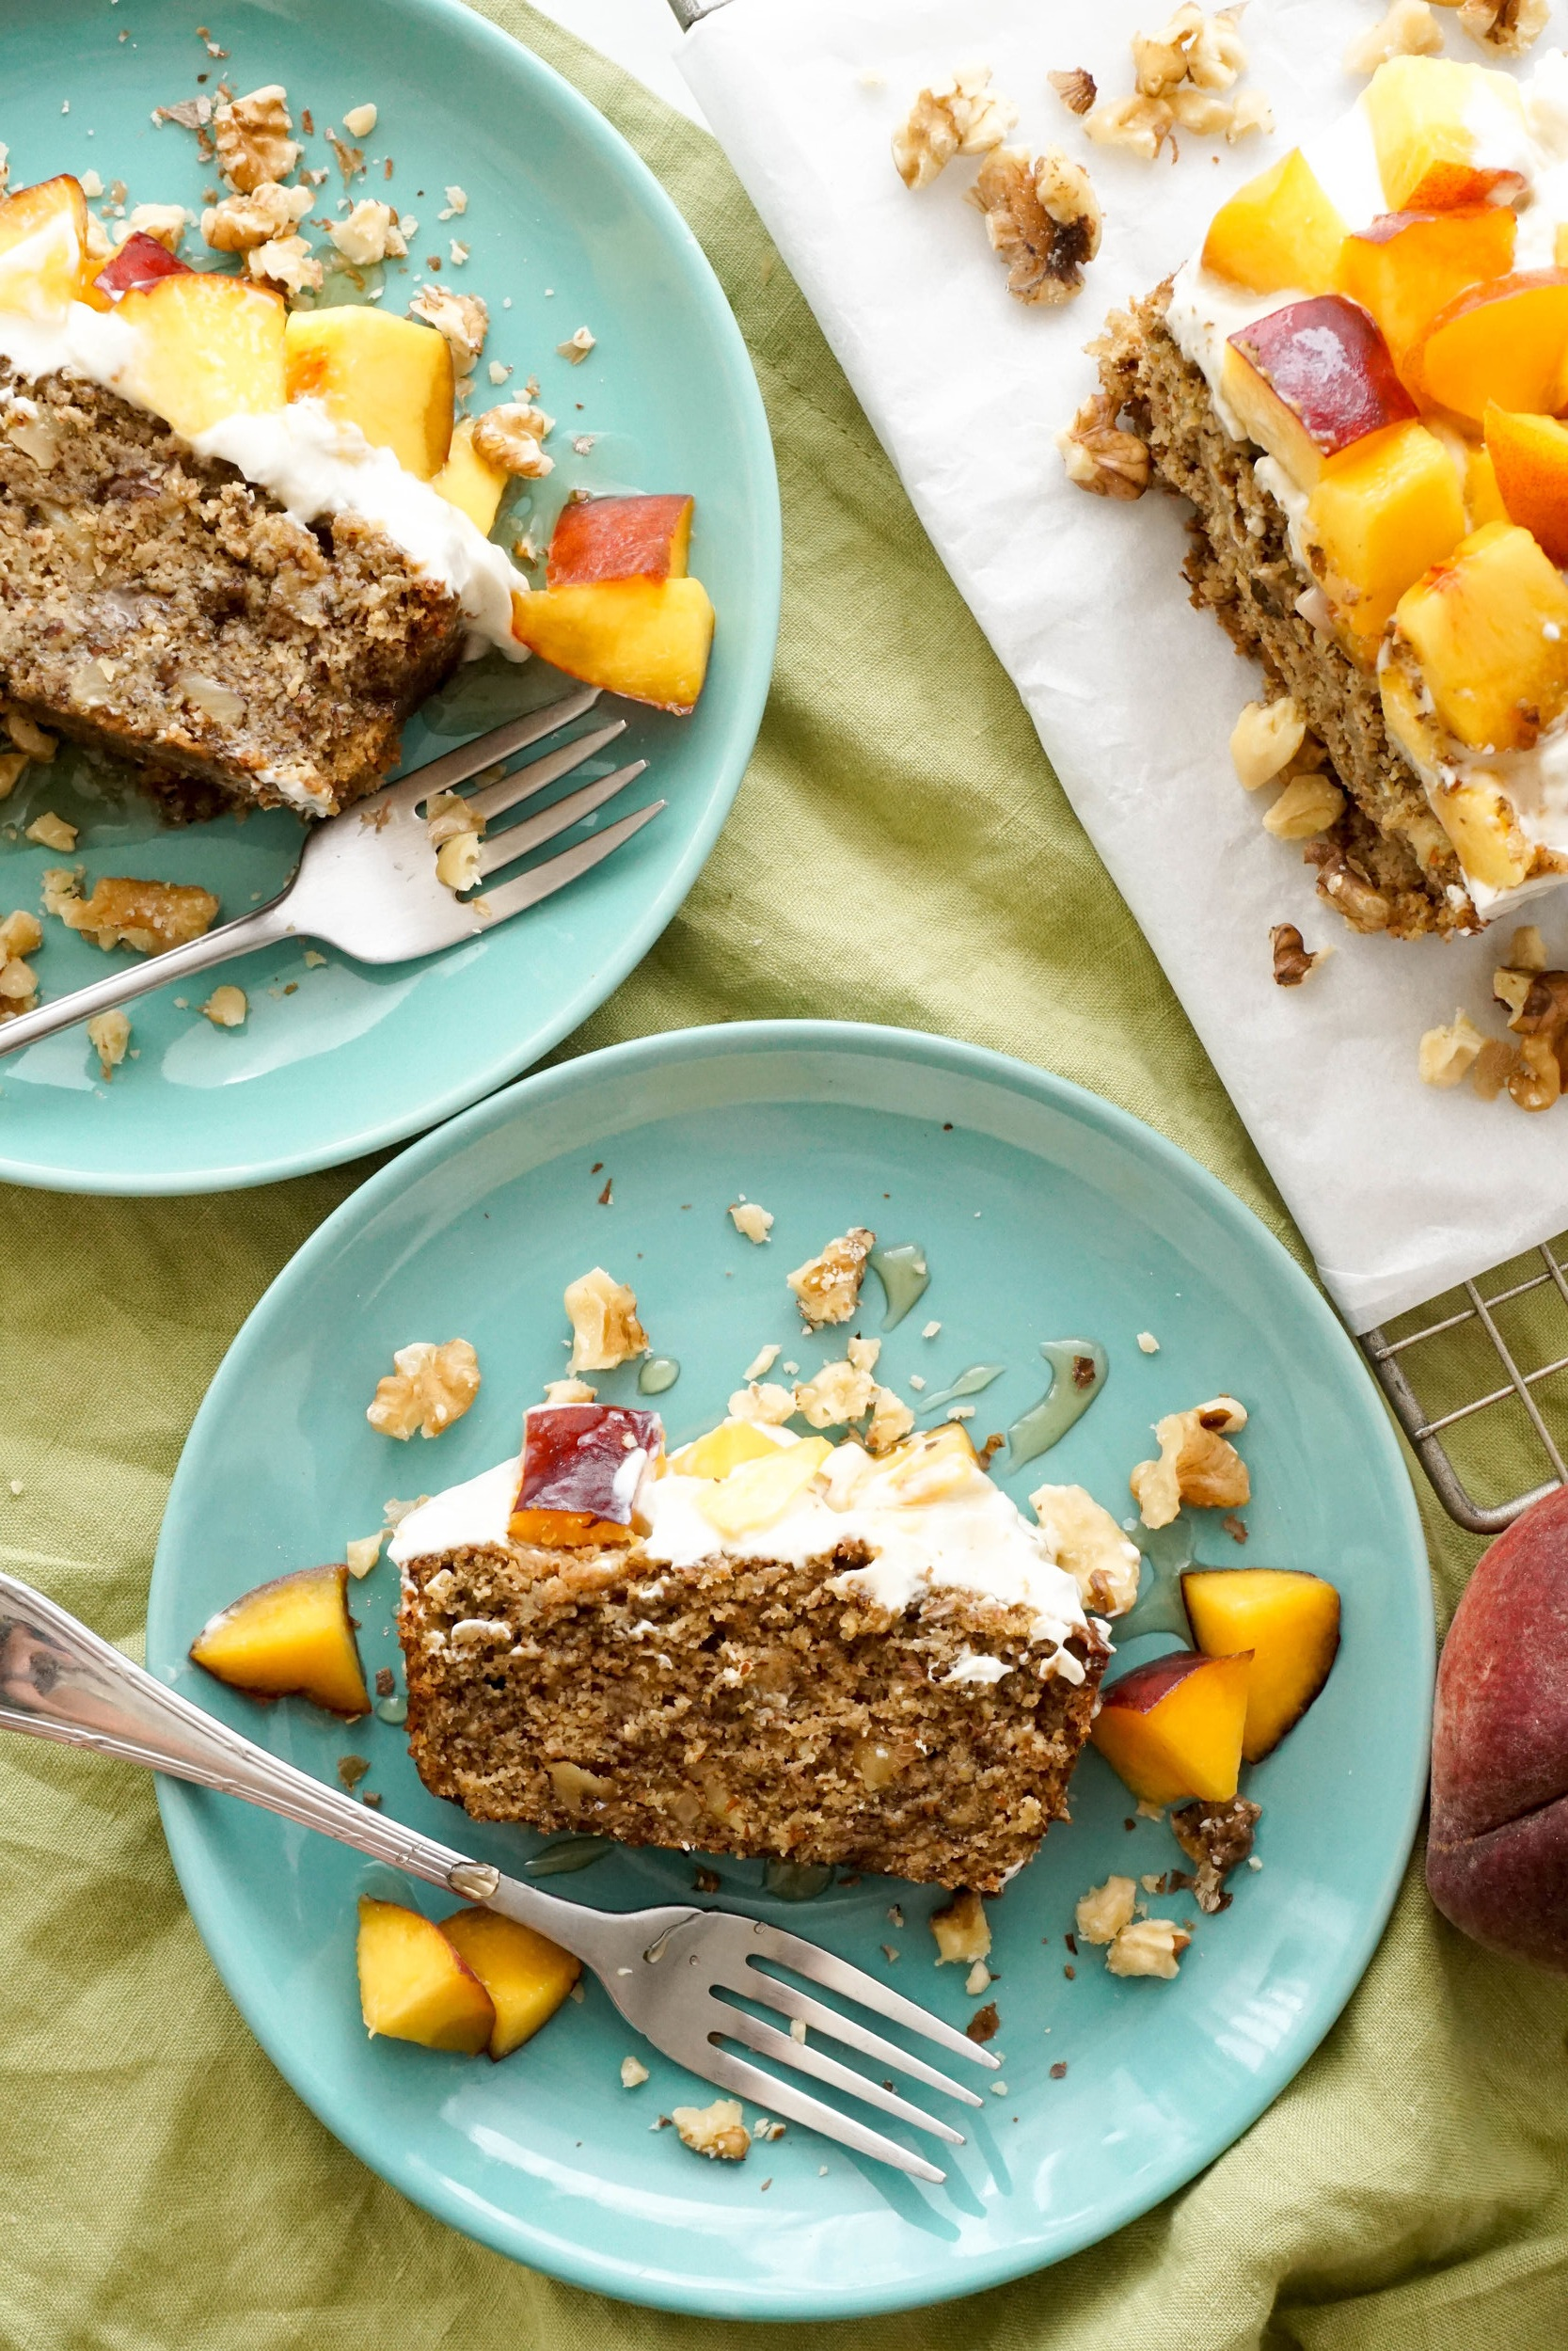 Brown Butter Banana Nut Bread with Peaches & Cream Cheese Frosting (GF)